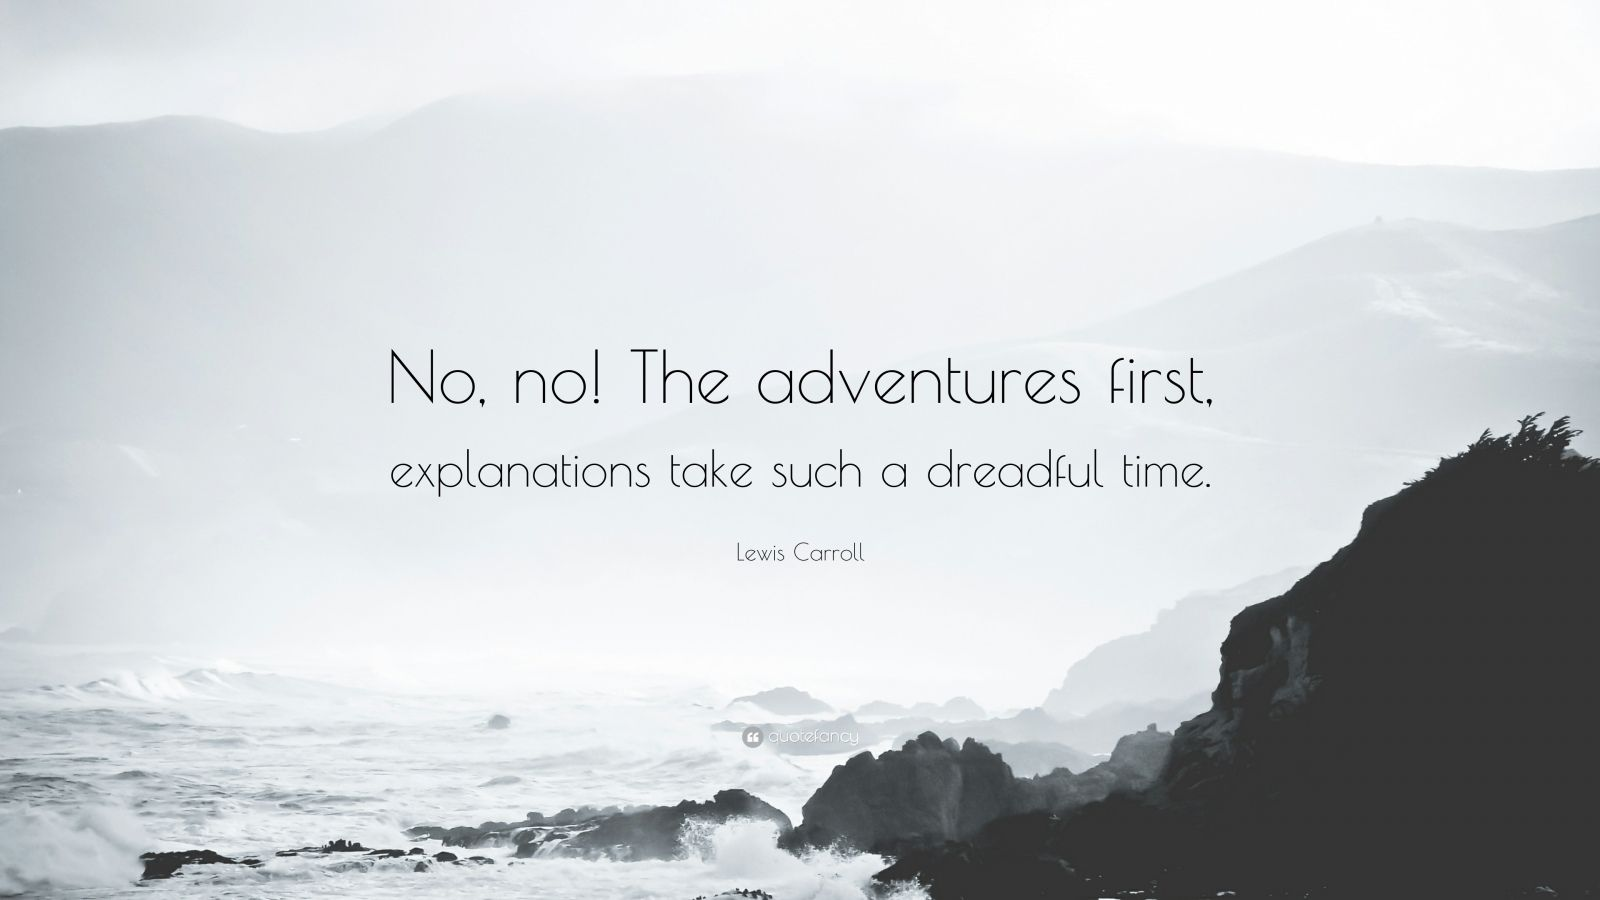 """Patience Quotes: """"No, no! The adventures first, explanations take such a dreadful time."""" — Lewis Carroll"""